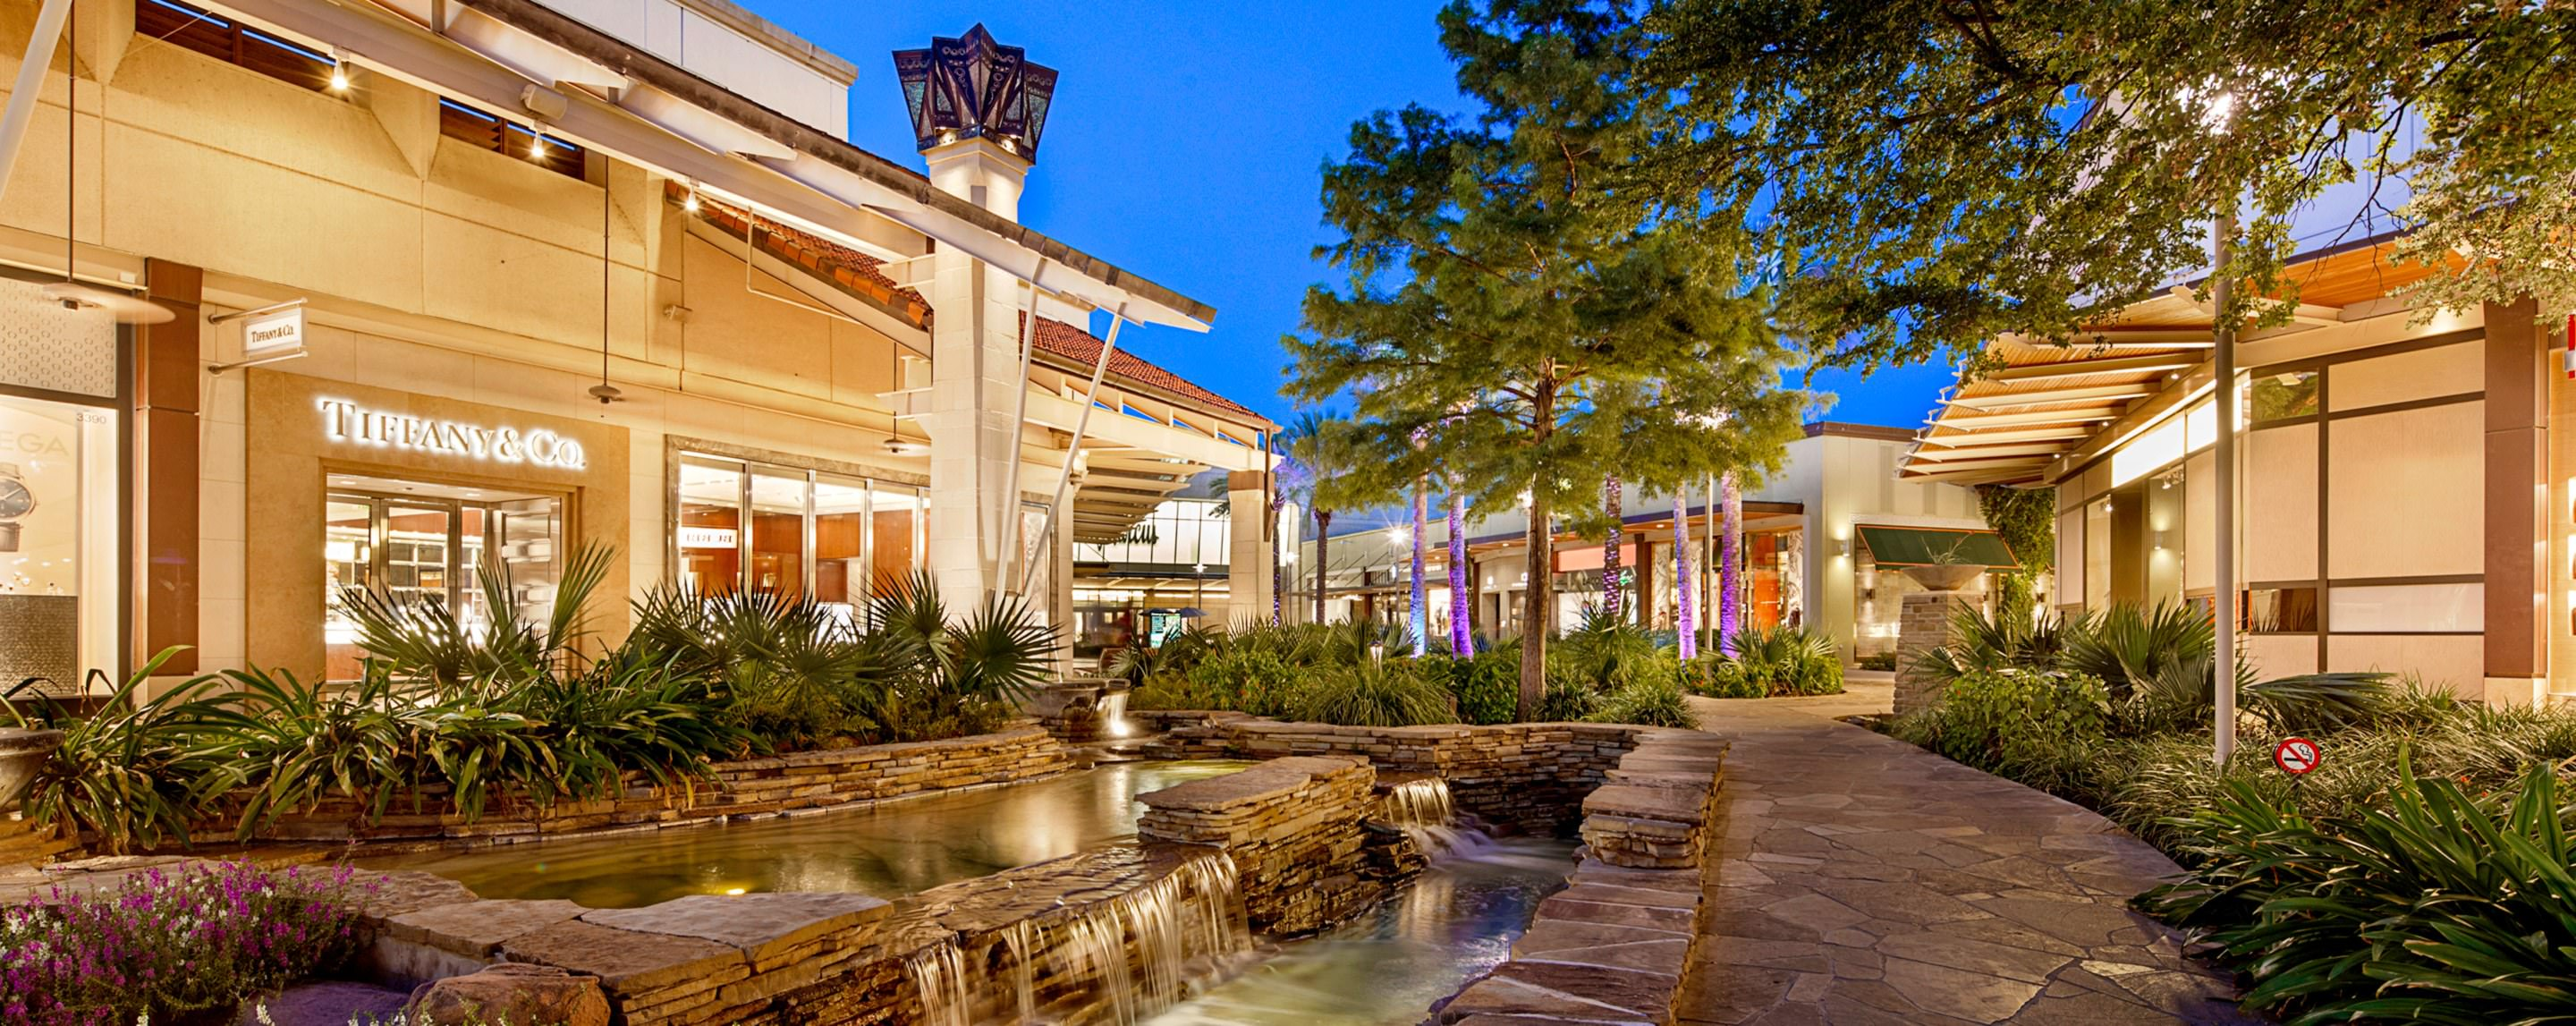 Outdoor walkway at La Cantera Office North